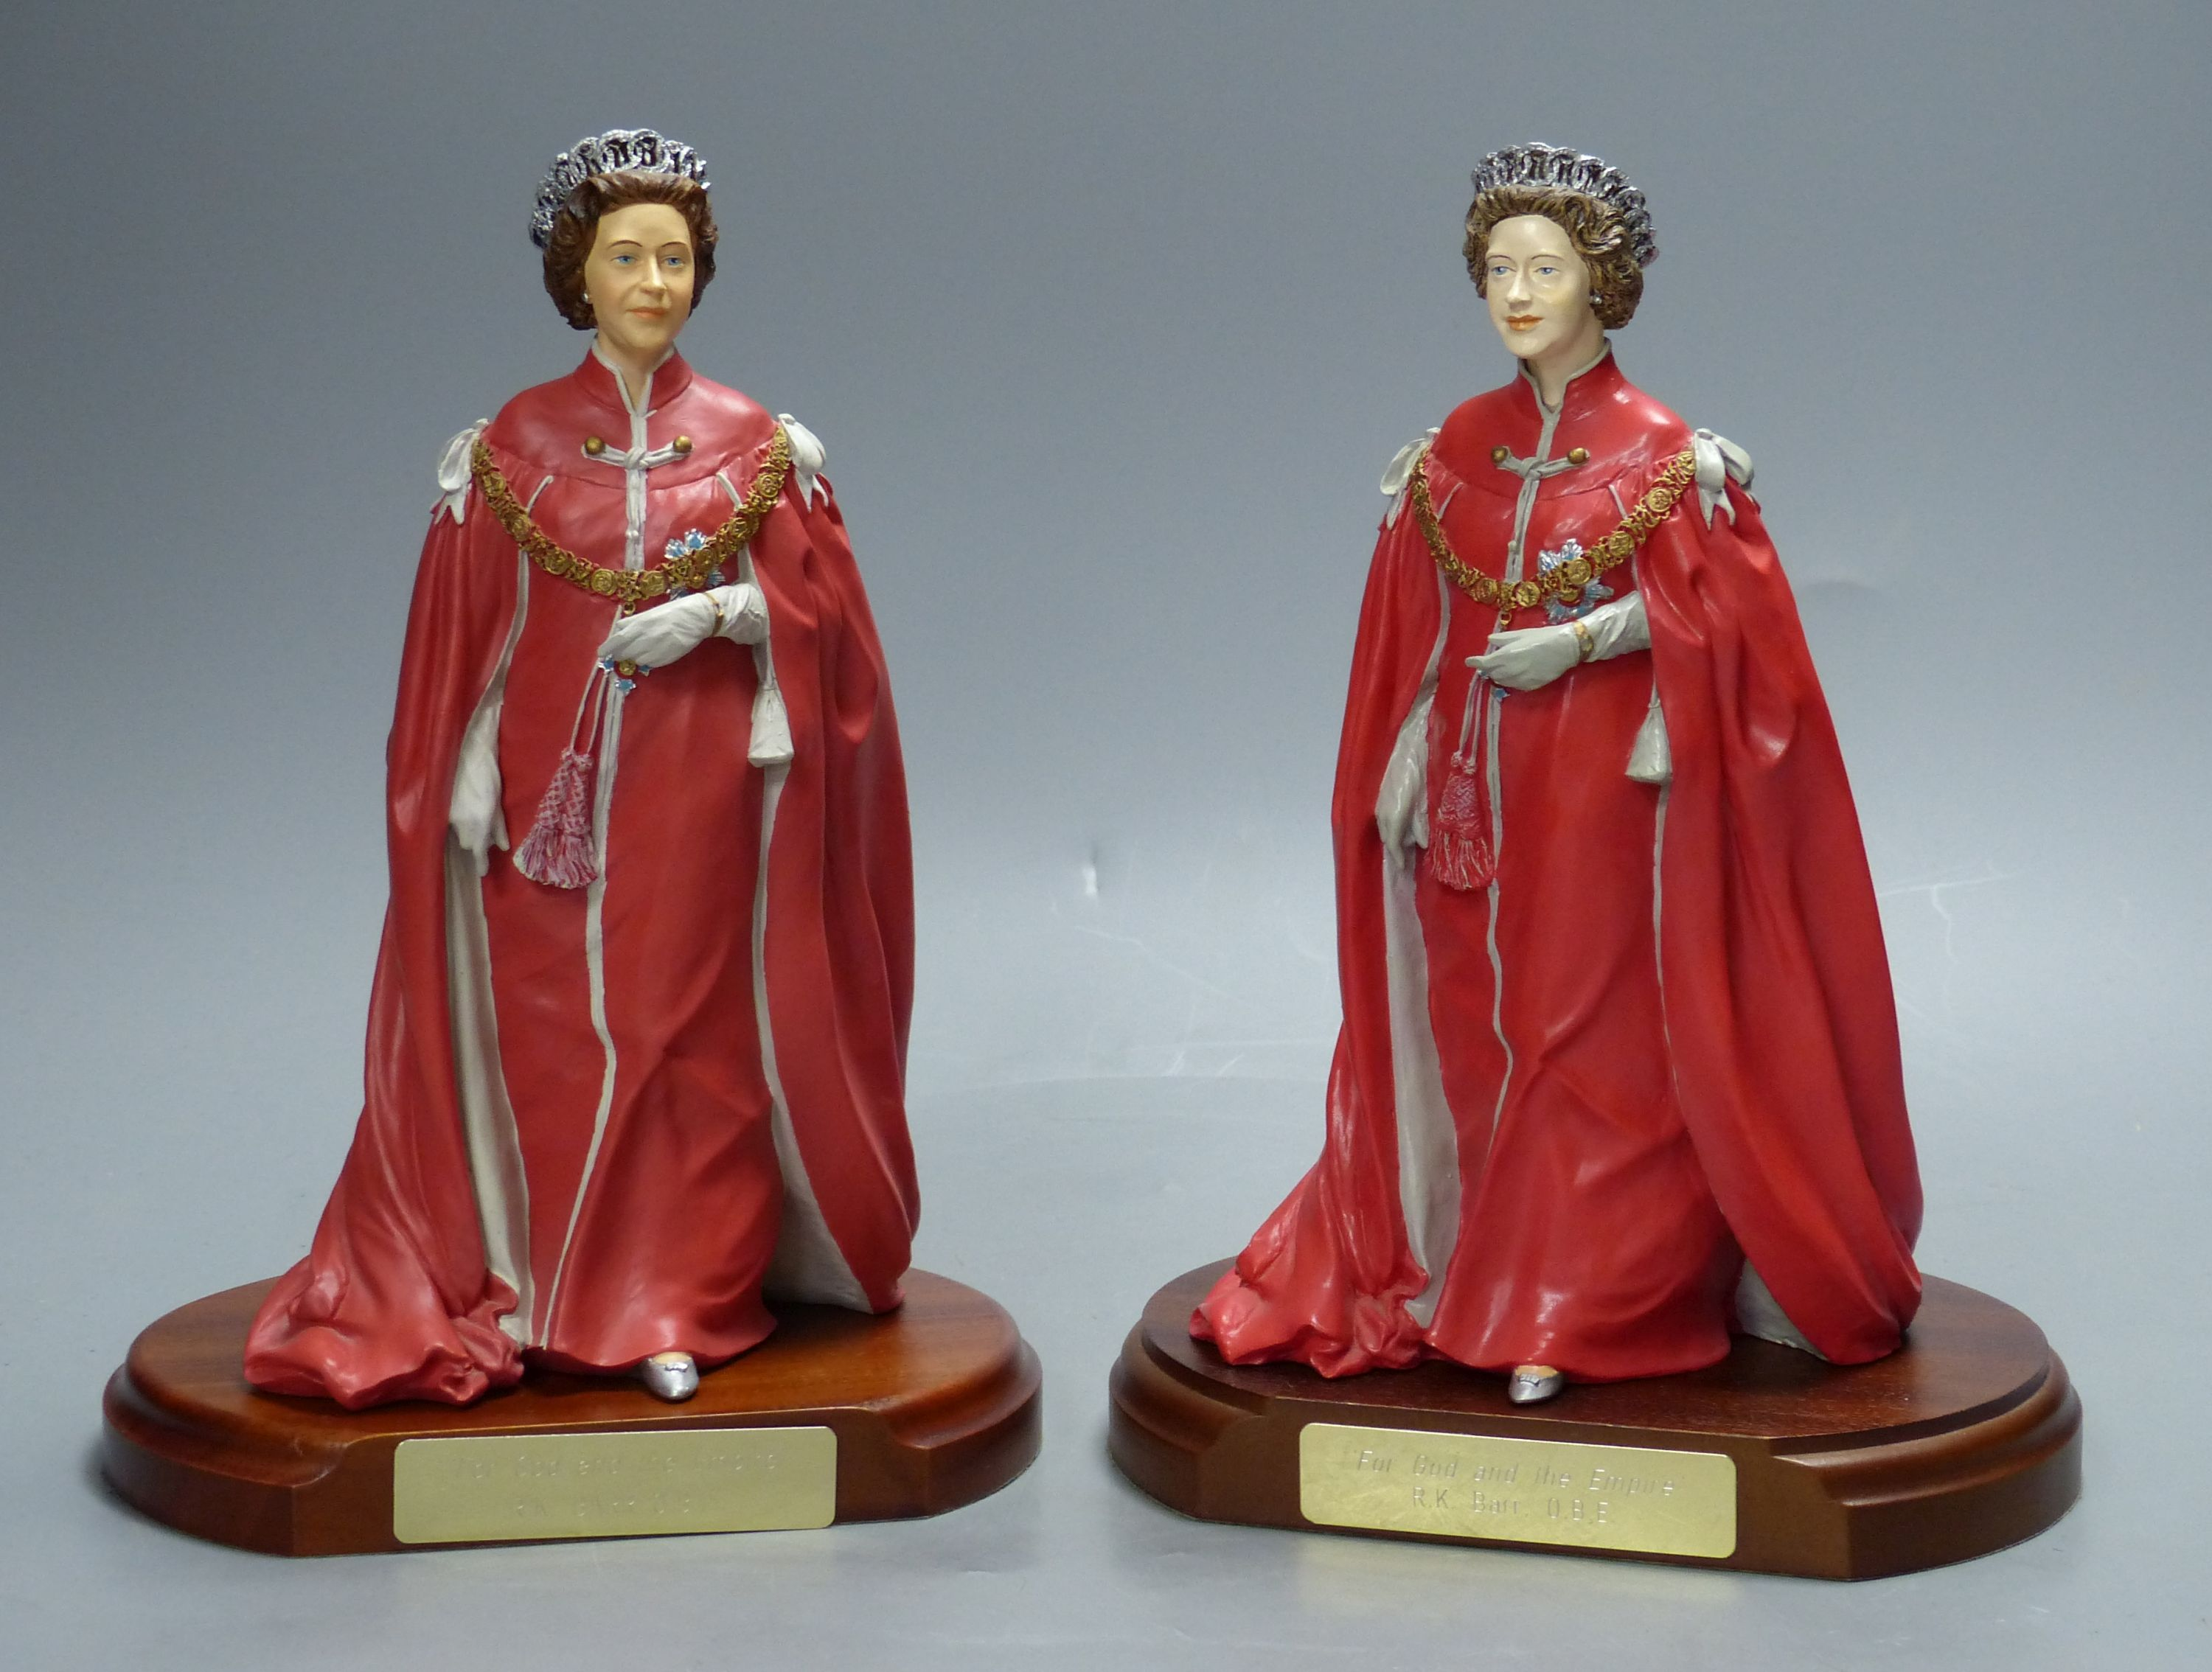 Two cold-cast porcelain figures of HM Queen Elizabeth II by Timothy Potts,commissioned for those